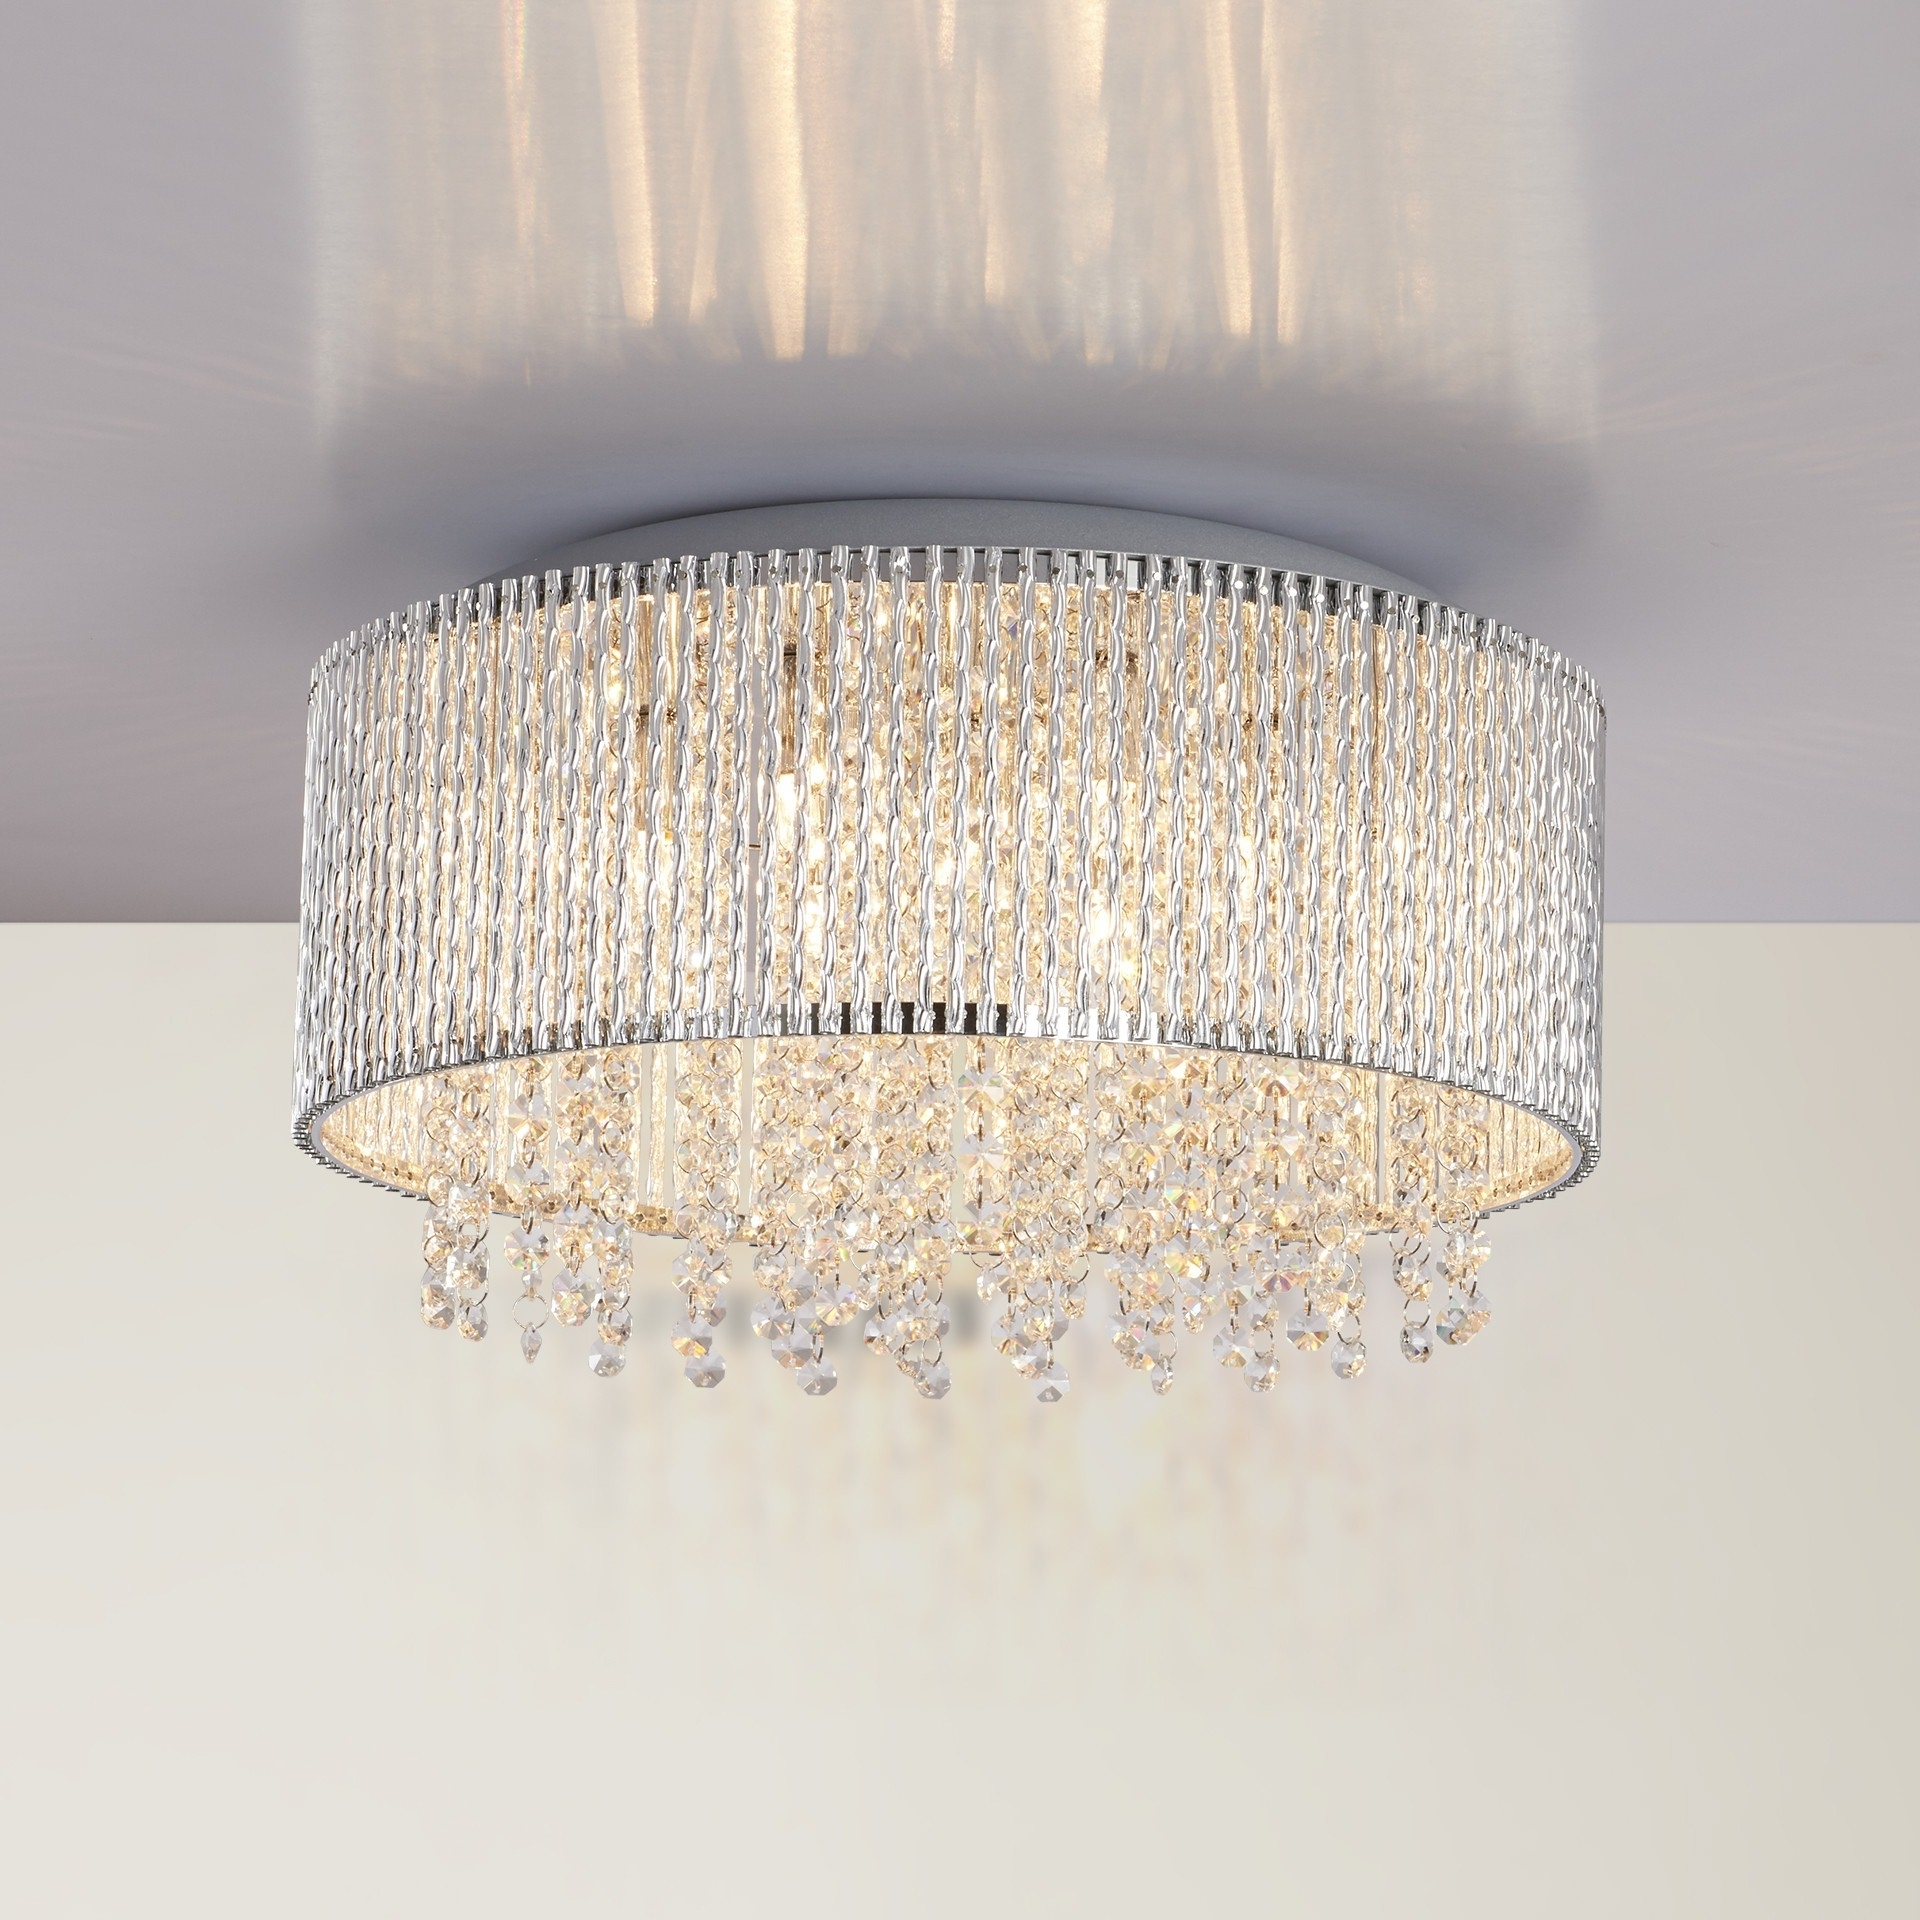 Chandeliers Design : Wonderful Trend Flush Chandelier For Small Home With 2019 Flush Chandelier (View 4 of 20)